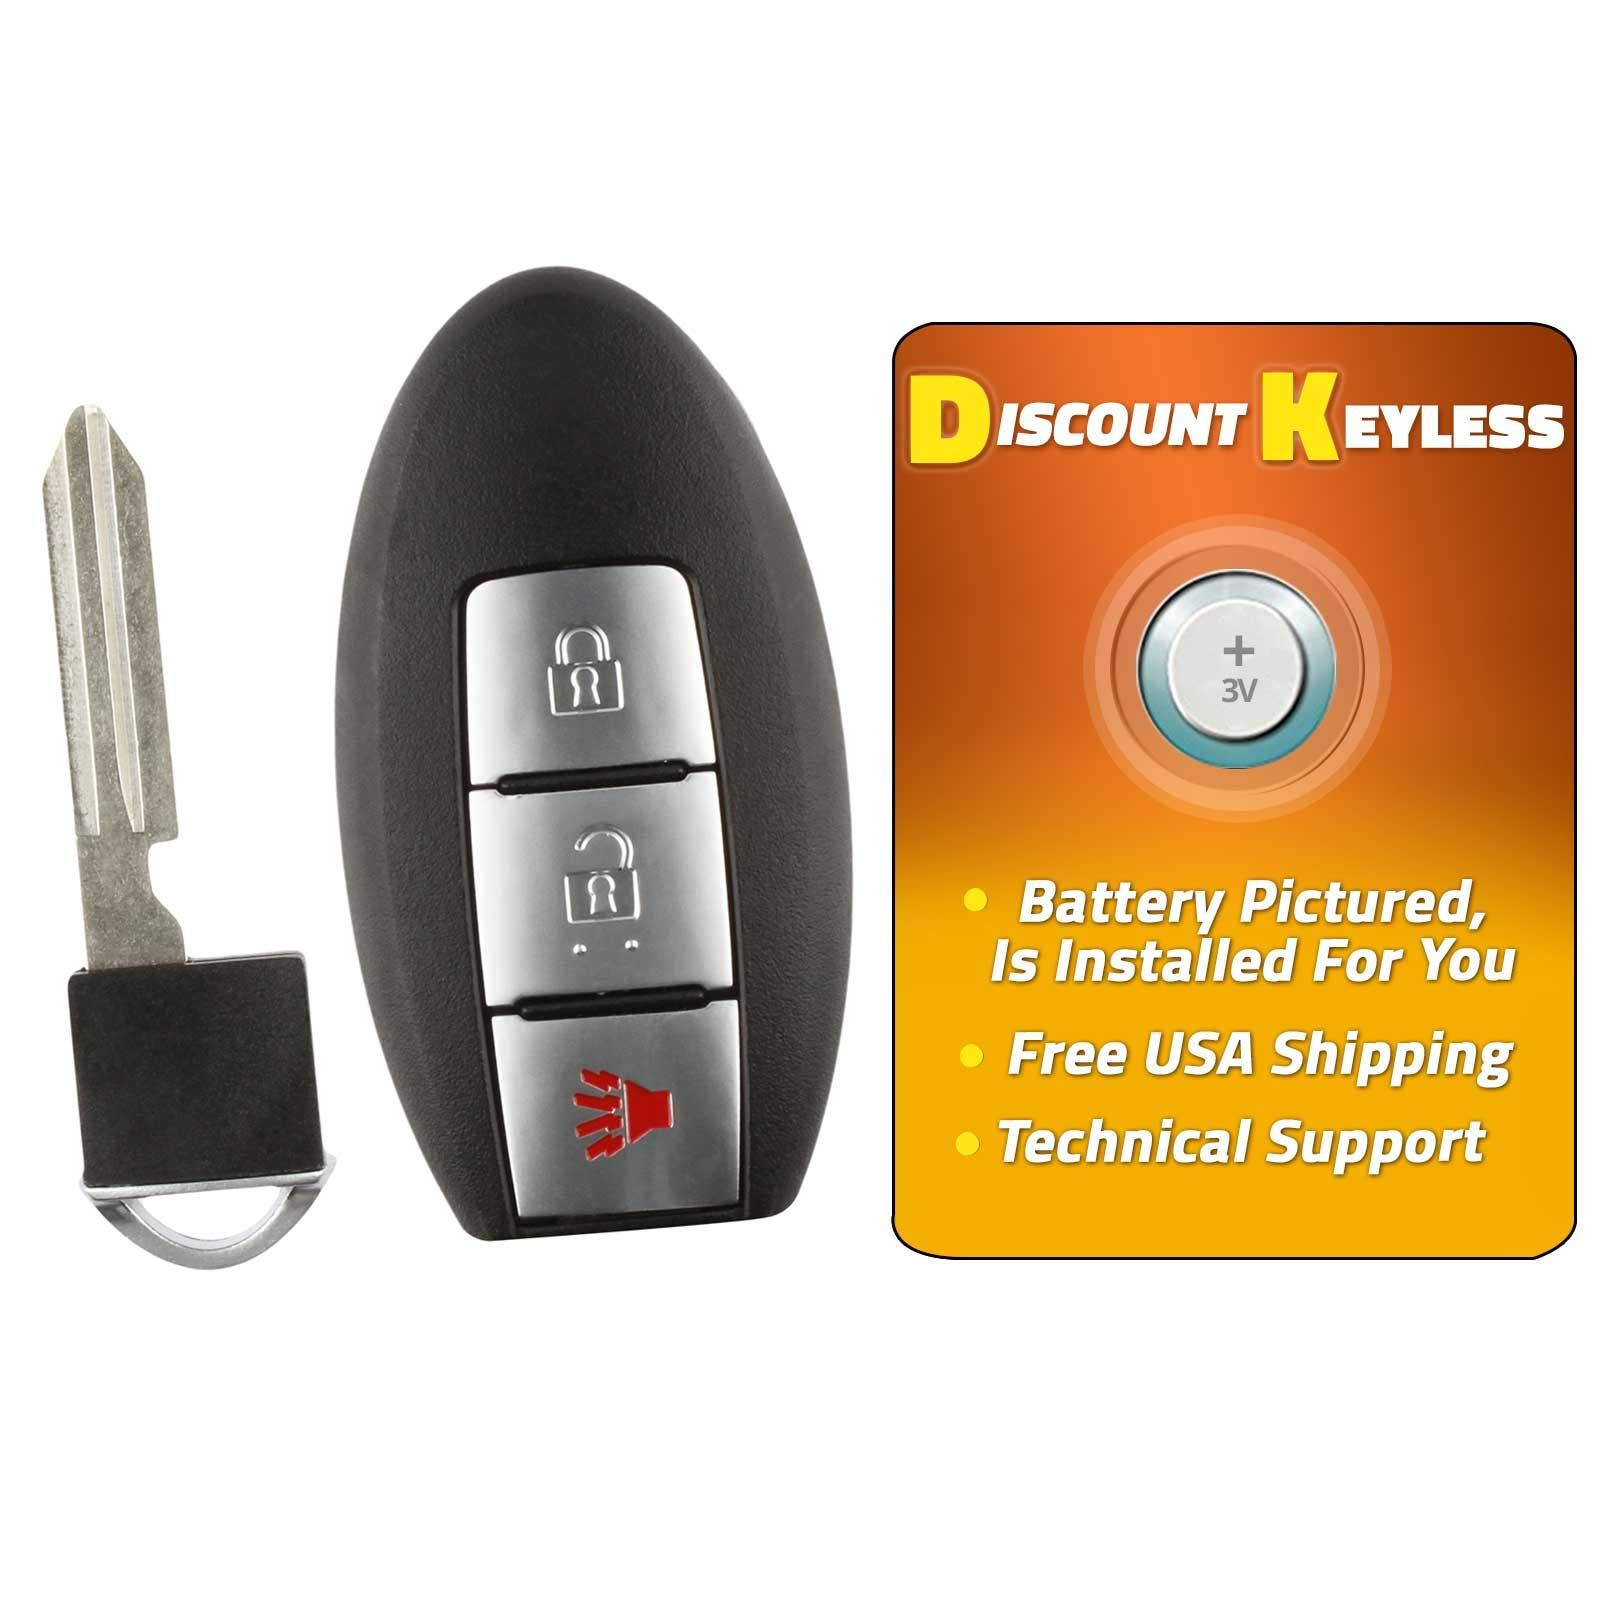 Discount keyless remote control entry replacement car